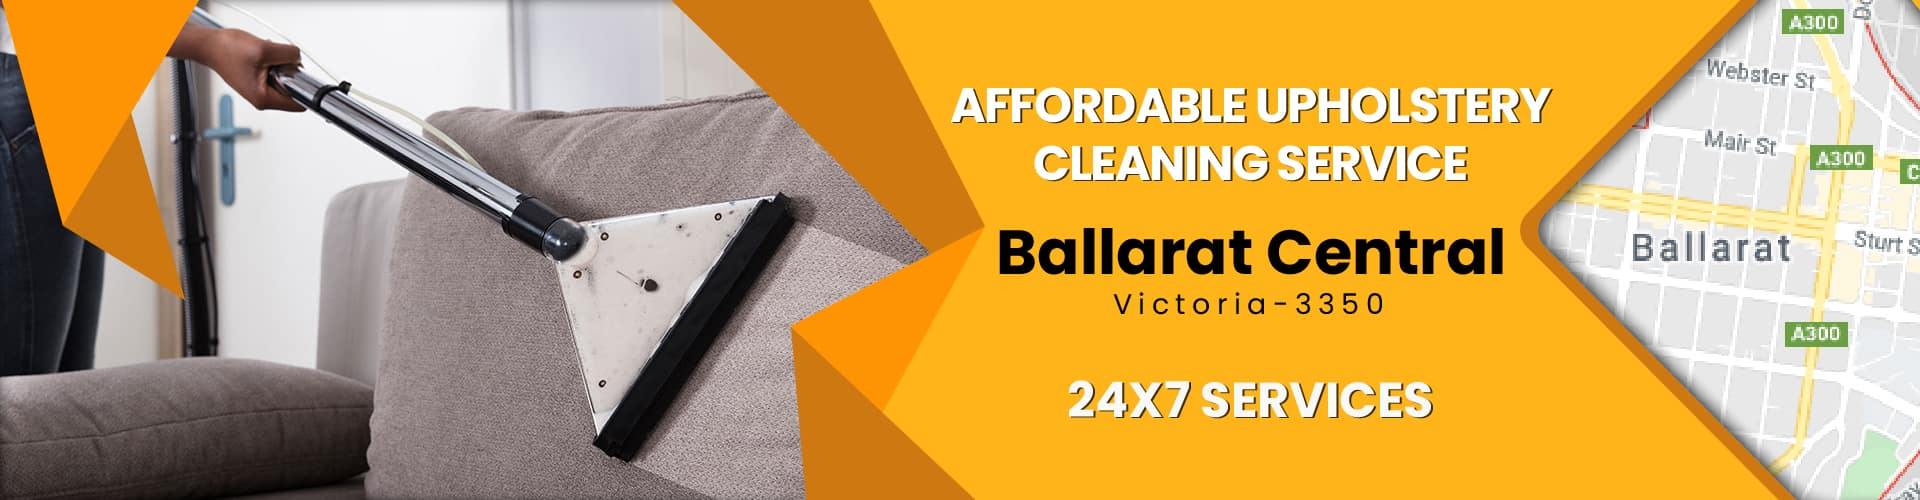 Upholstery Cleaning Ballarat Central